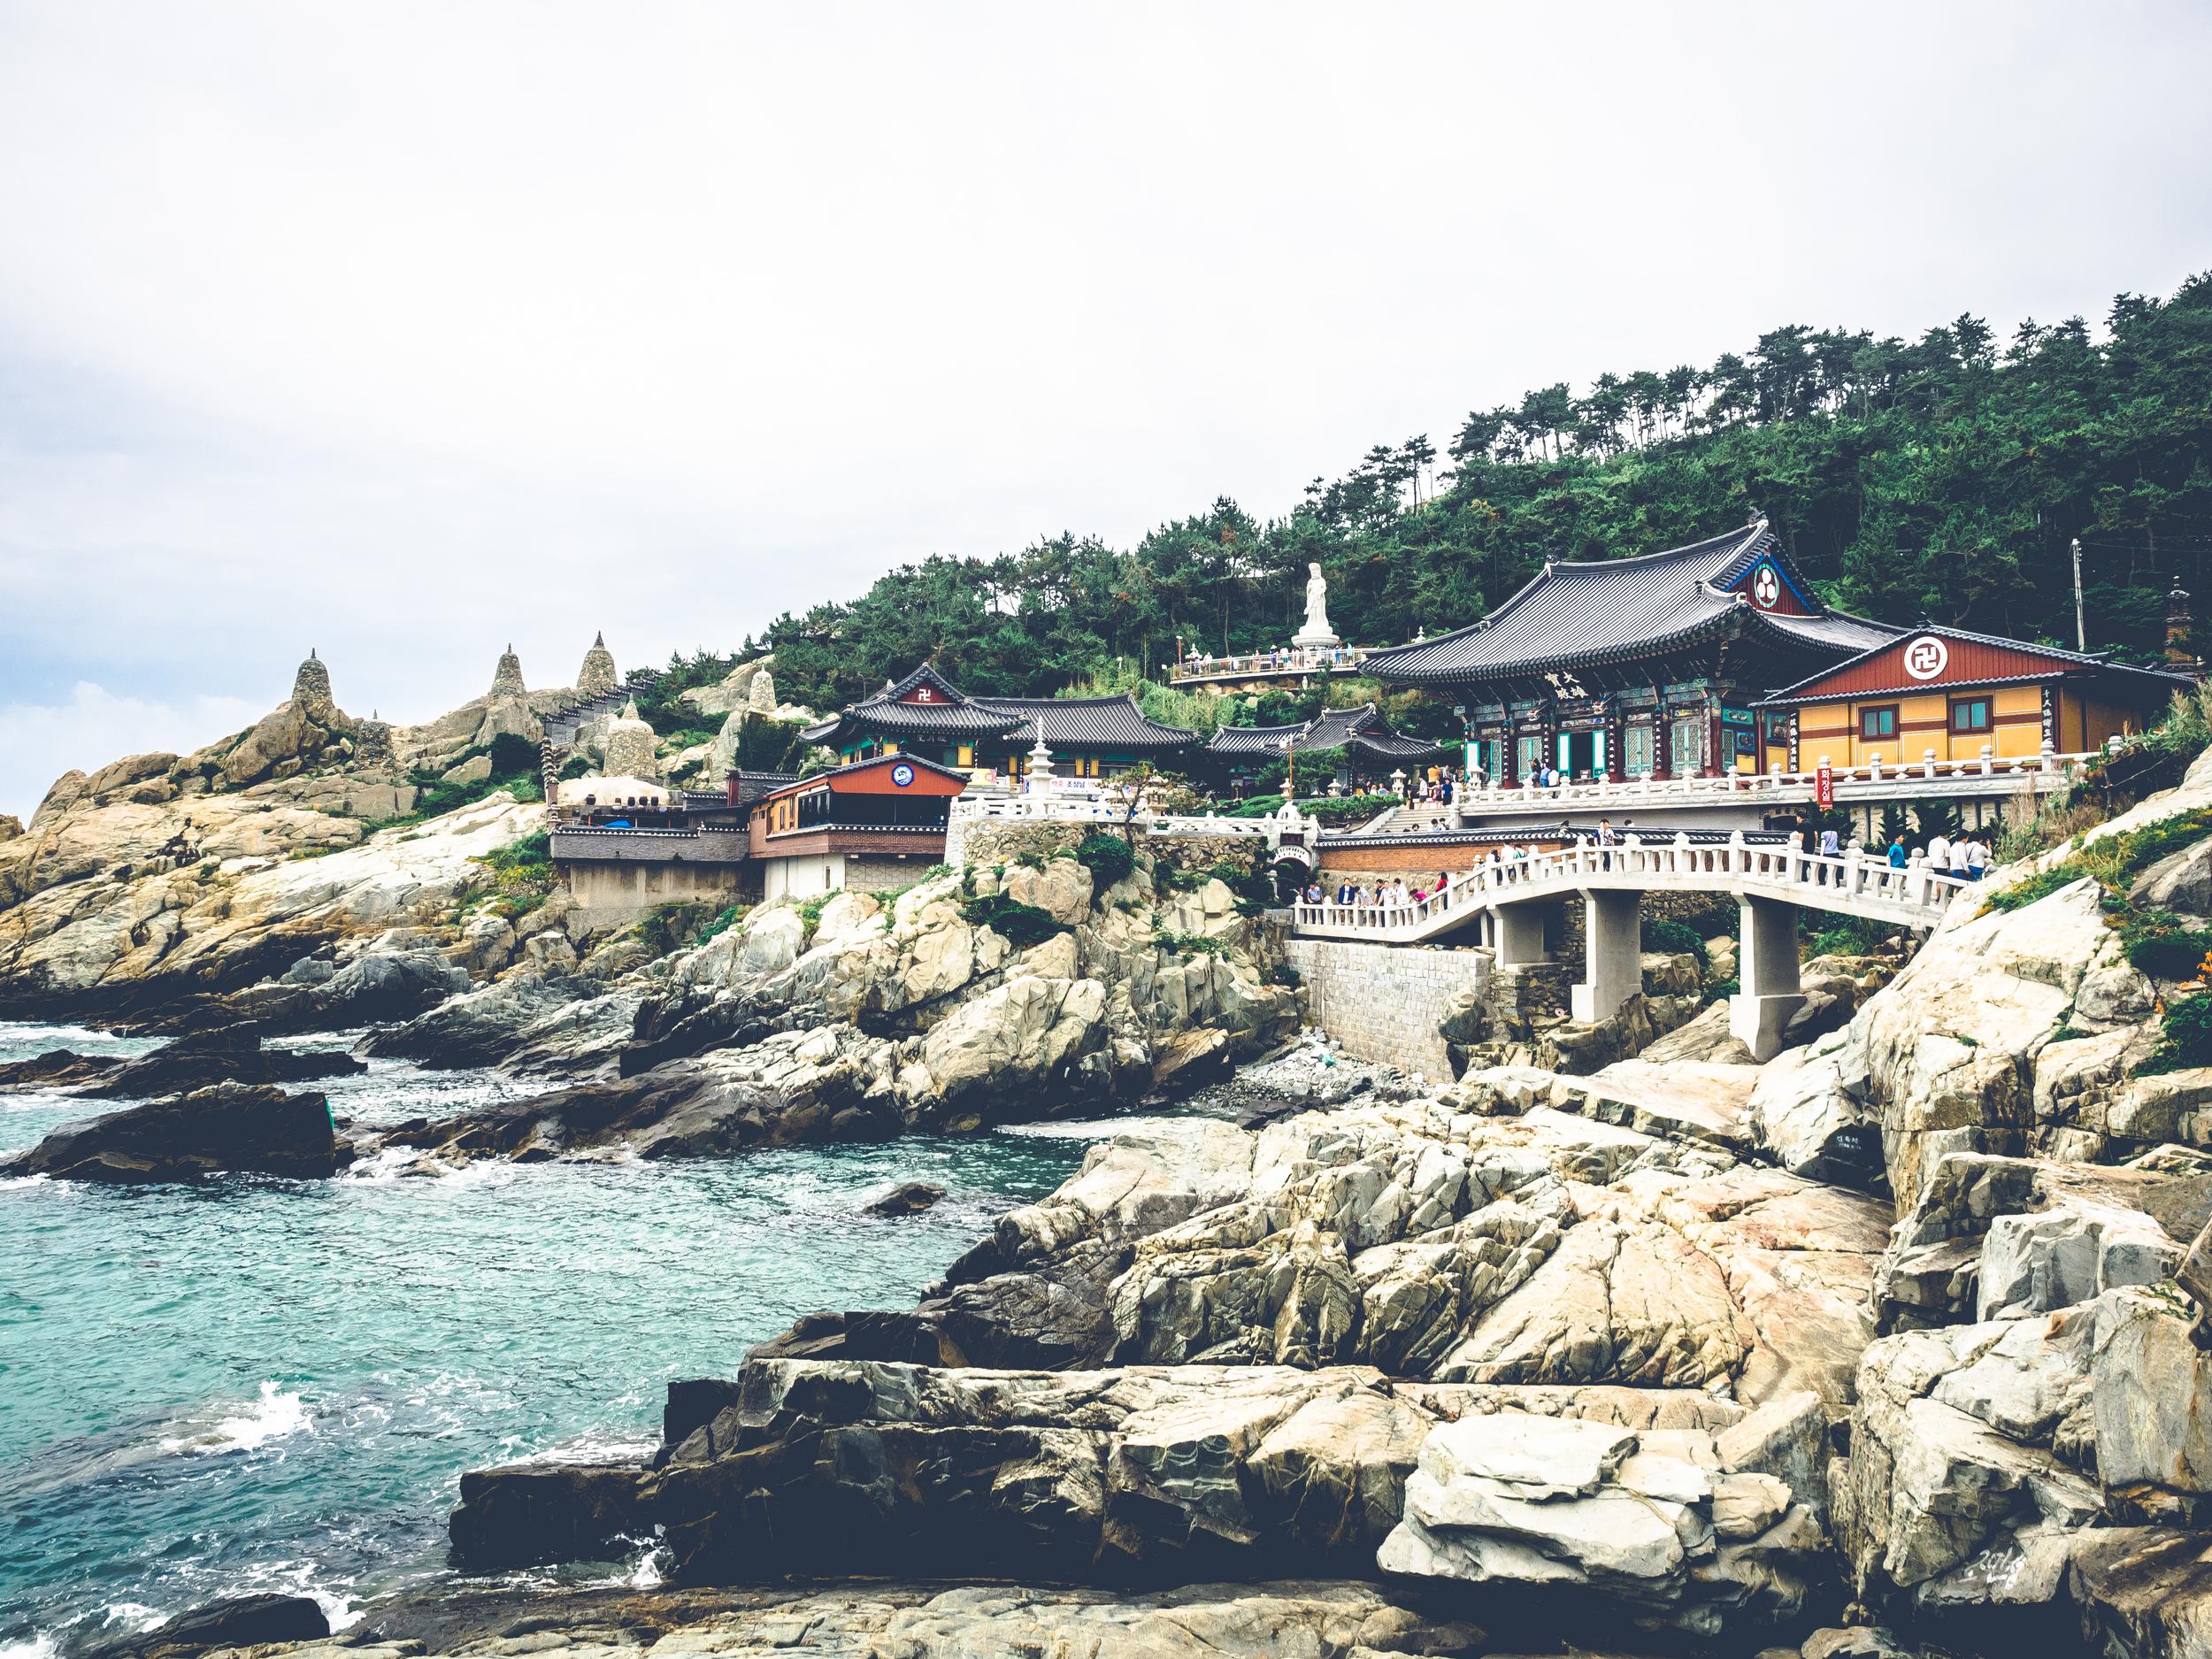 Built on the rocky shore of the salty sea in Busan, South Korea